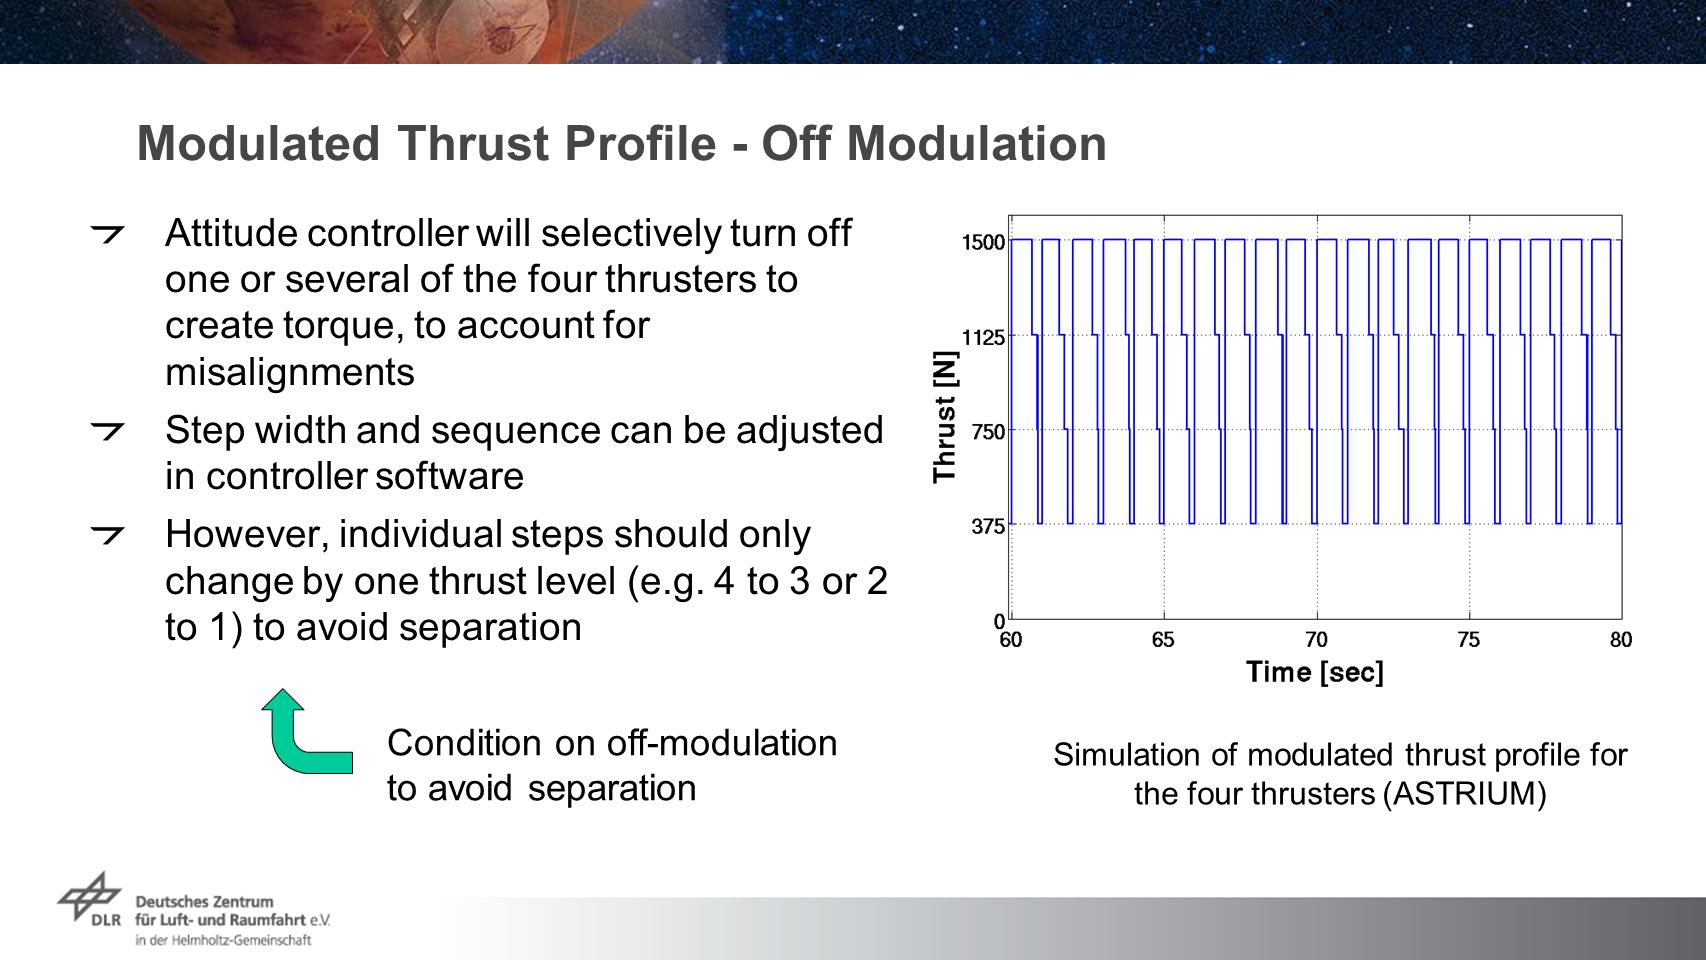 Modulated Thrust Profile - Off Modulation Attitude controller will selectively turn off one or several of the four thrusters to create torque, to account for misalignments Step width and sequence can be adjusted in controller software However, individual steps should only change by one thrust level (e.g.